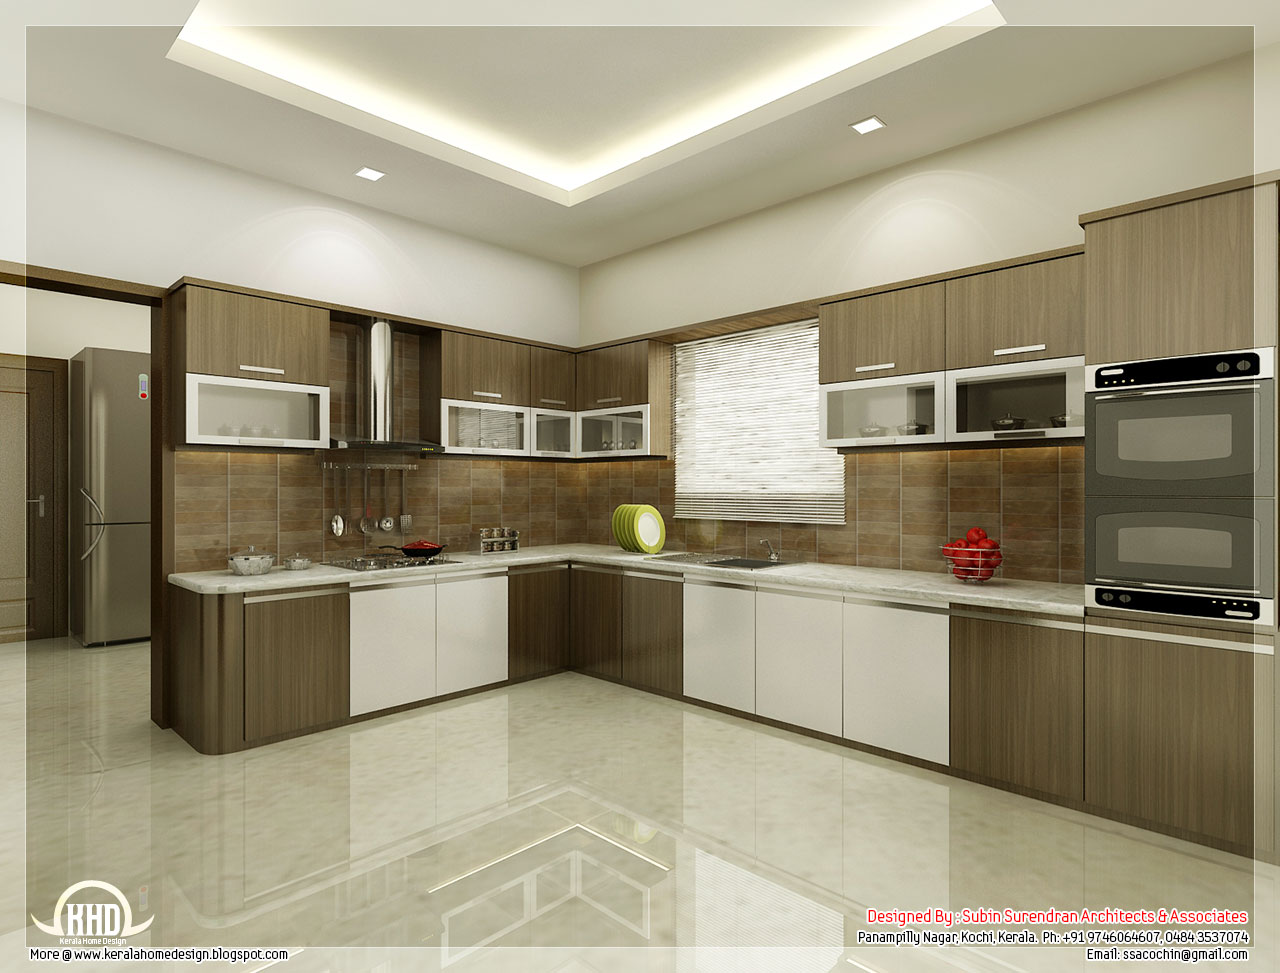 Kitchen and dining interiors - Kerala home design and ...